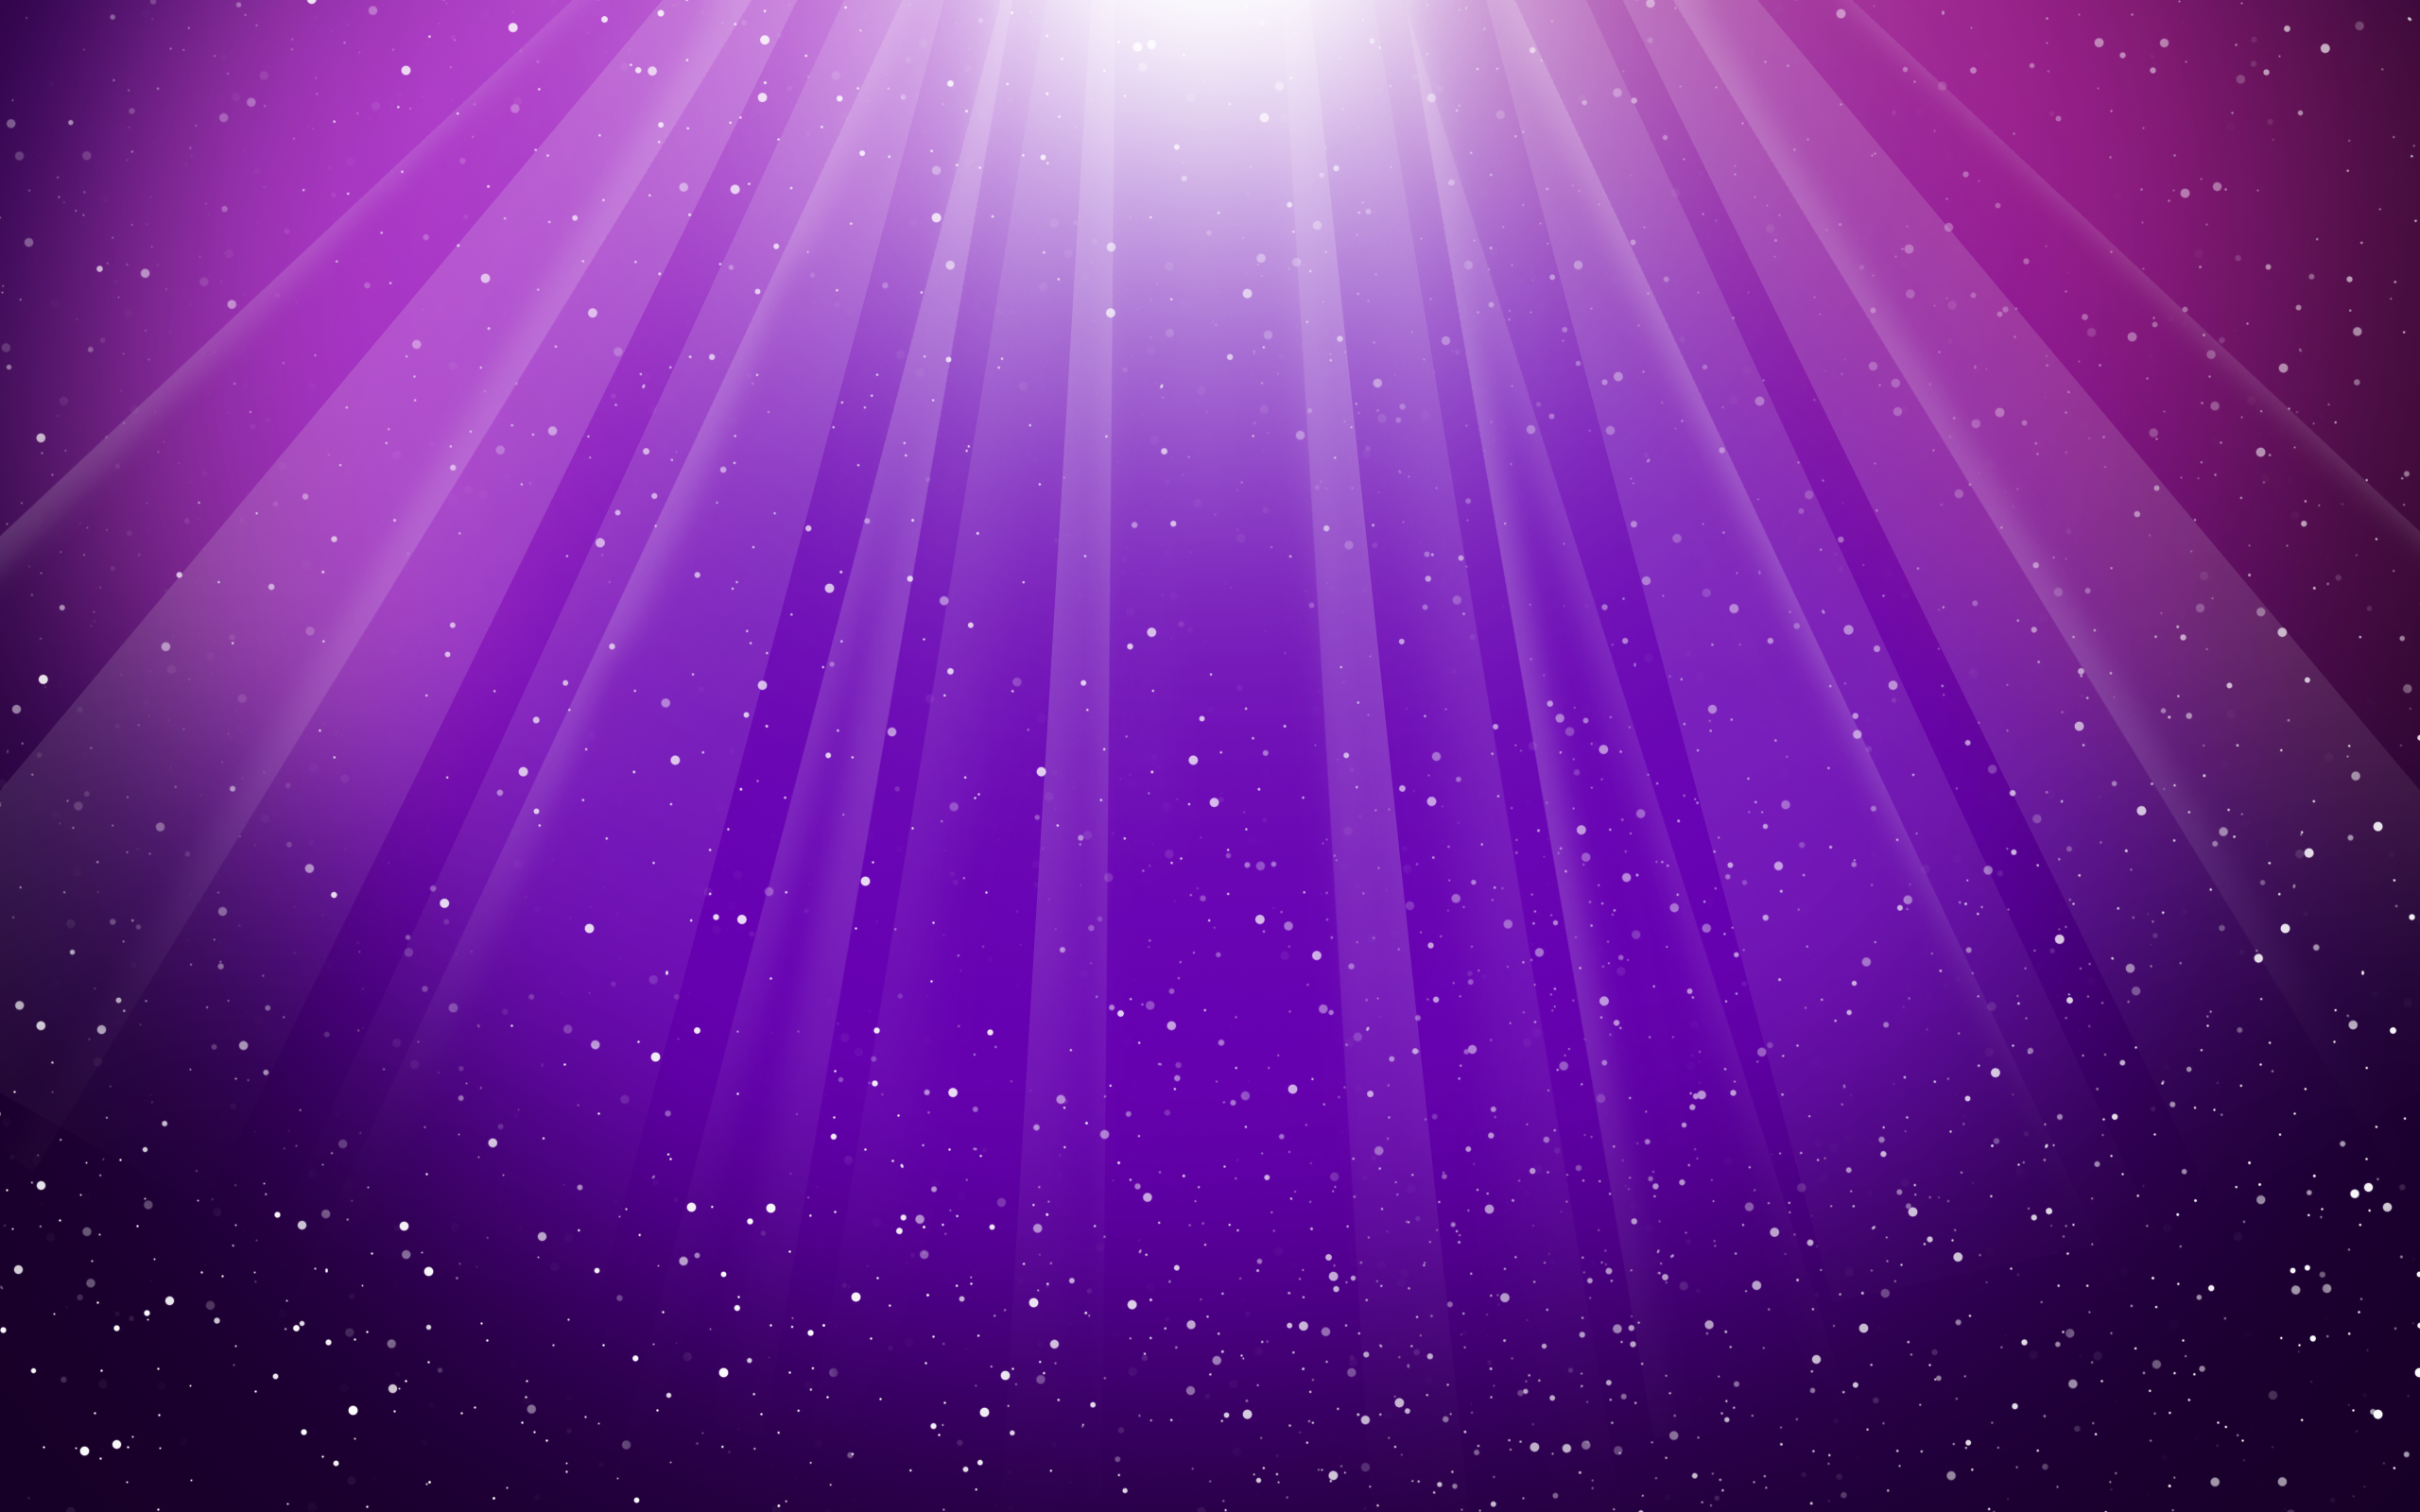 39 High Definition Purple Wallpaper Images for Download 2560x1600